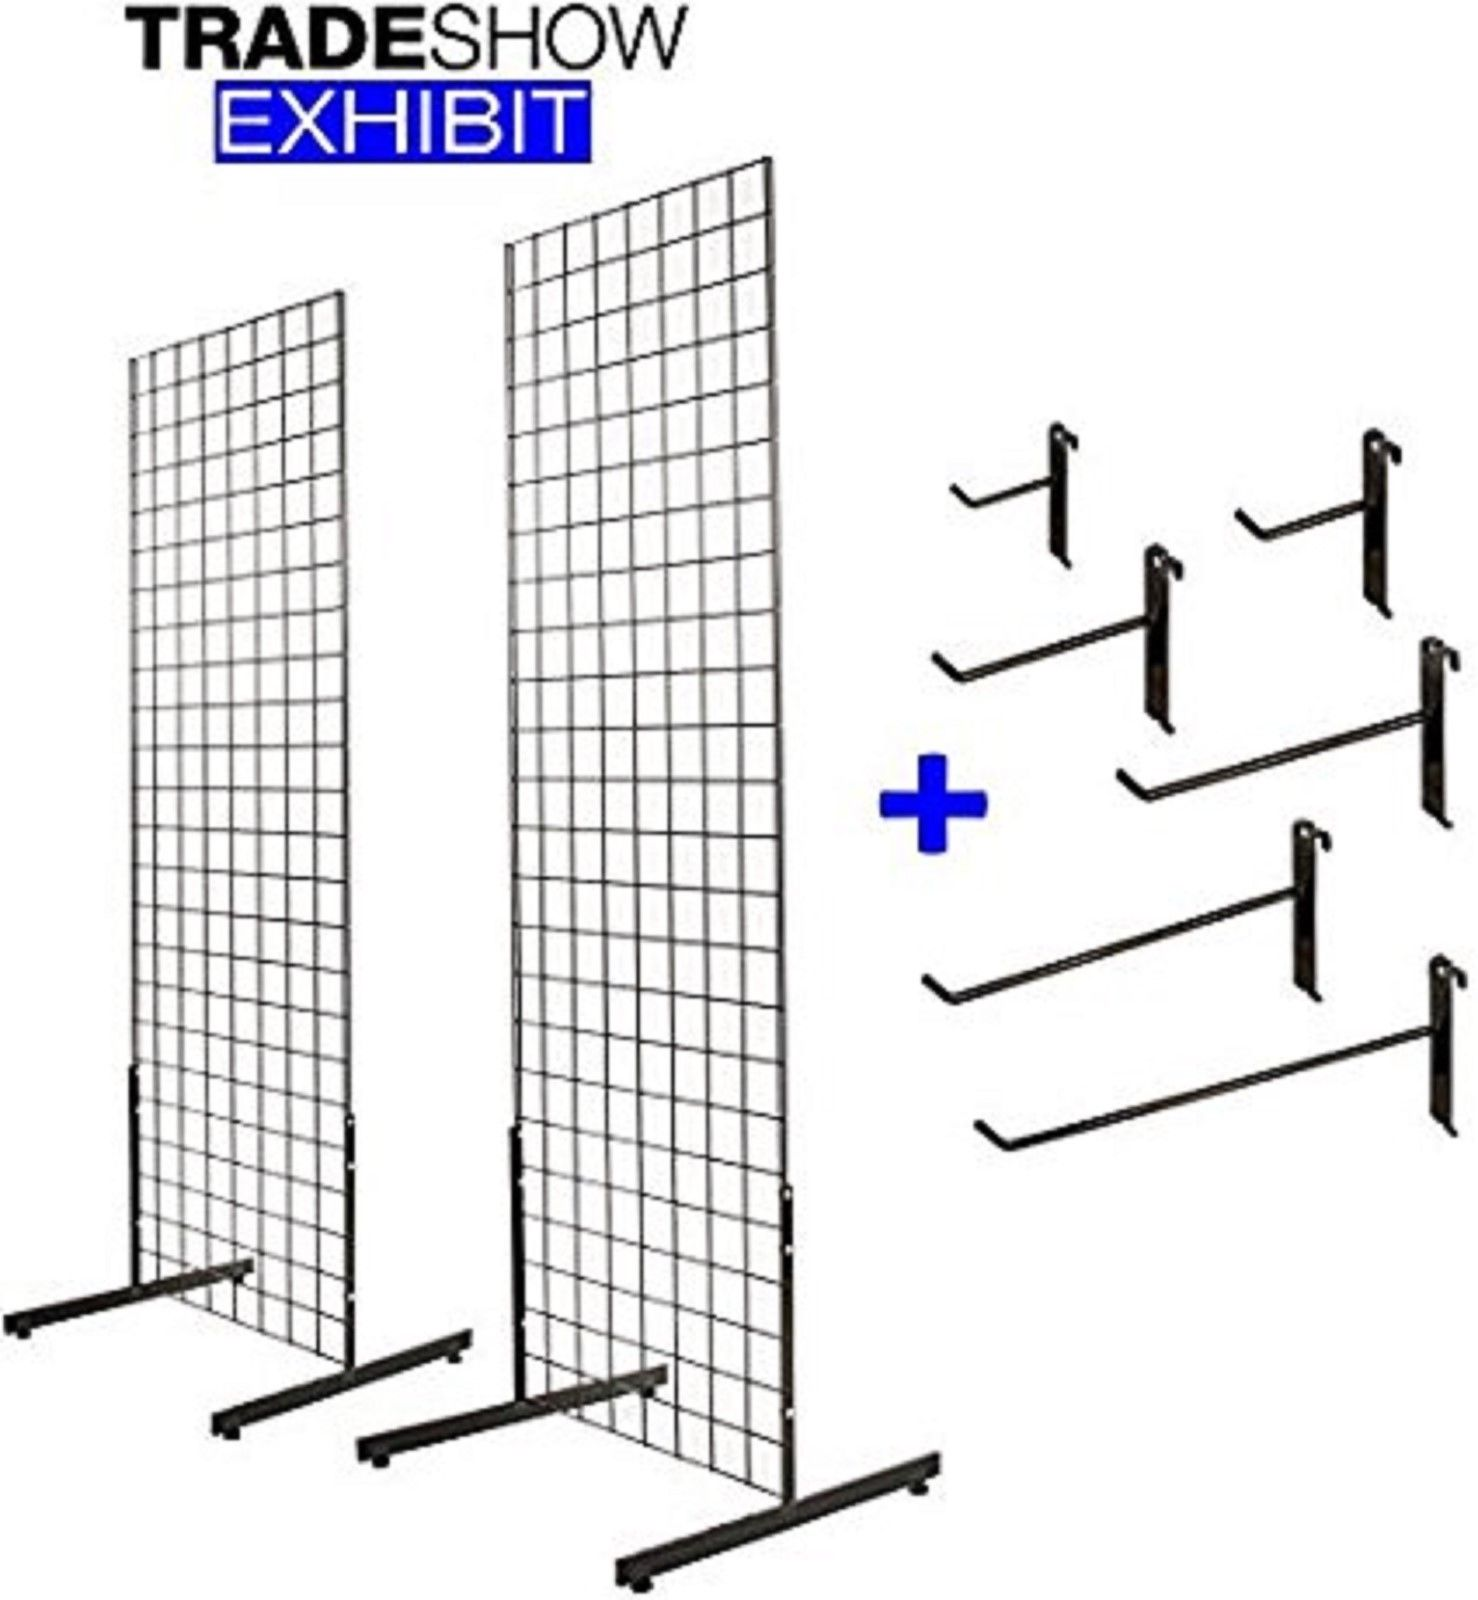 2' x 6' Gridwall Tower with T-Base Floorstanding Display Kit+Hooks